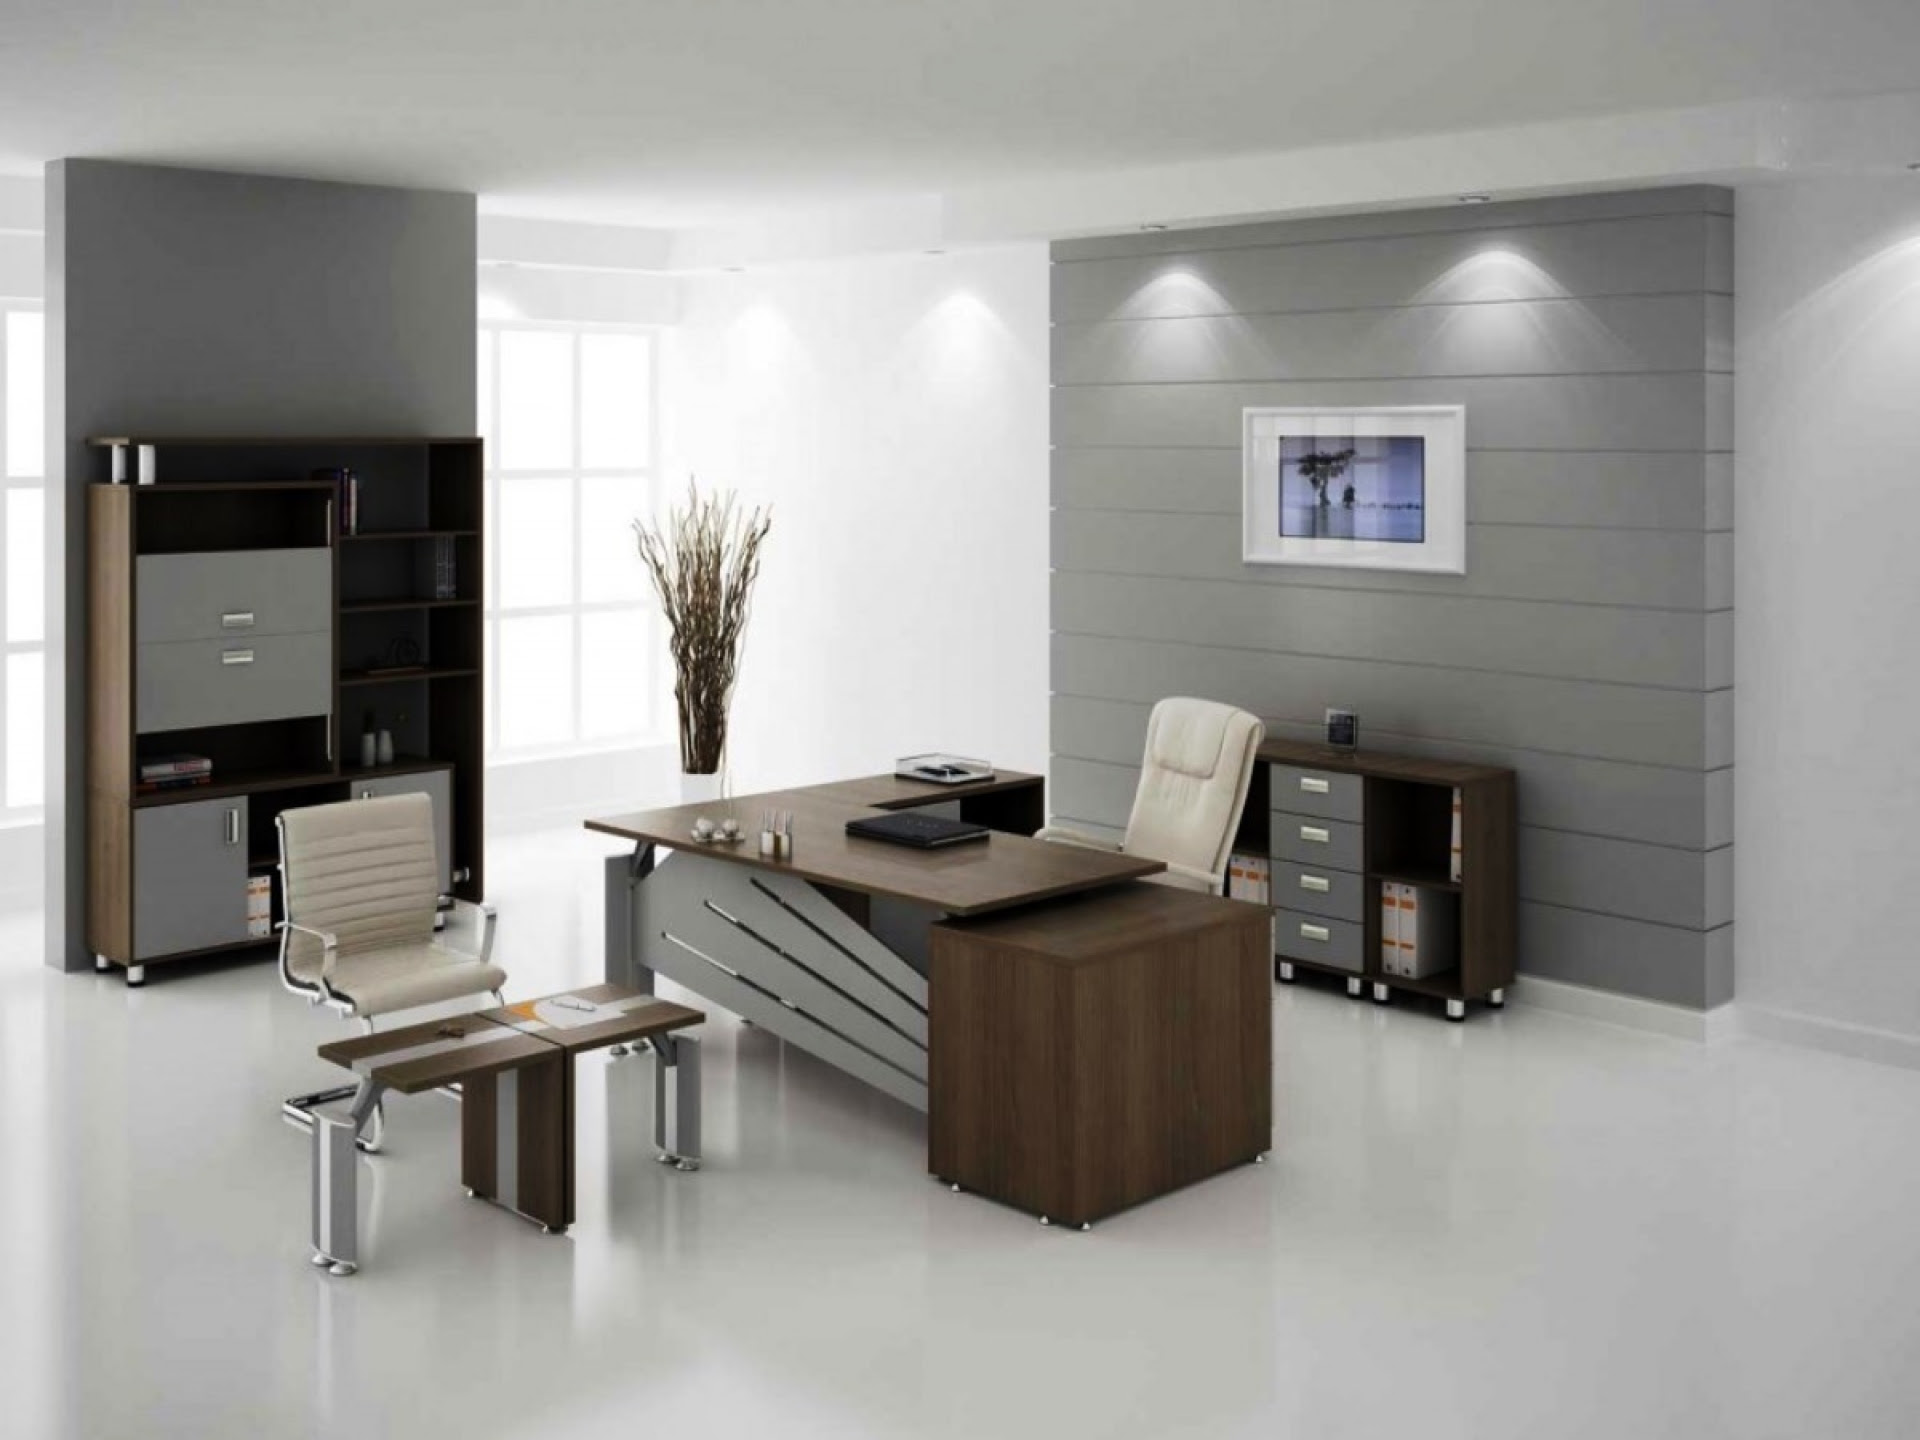 Small Business Office Space Ideas from lh6.googleusercontent.com